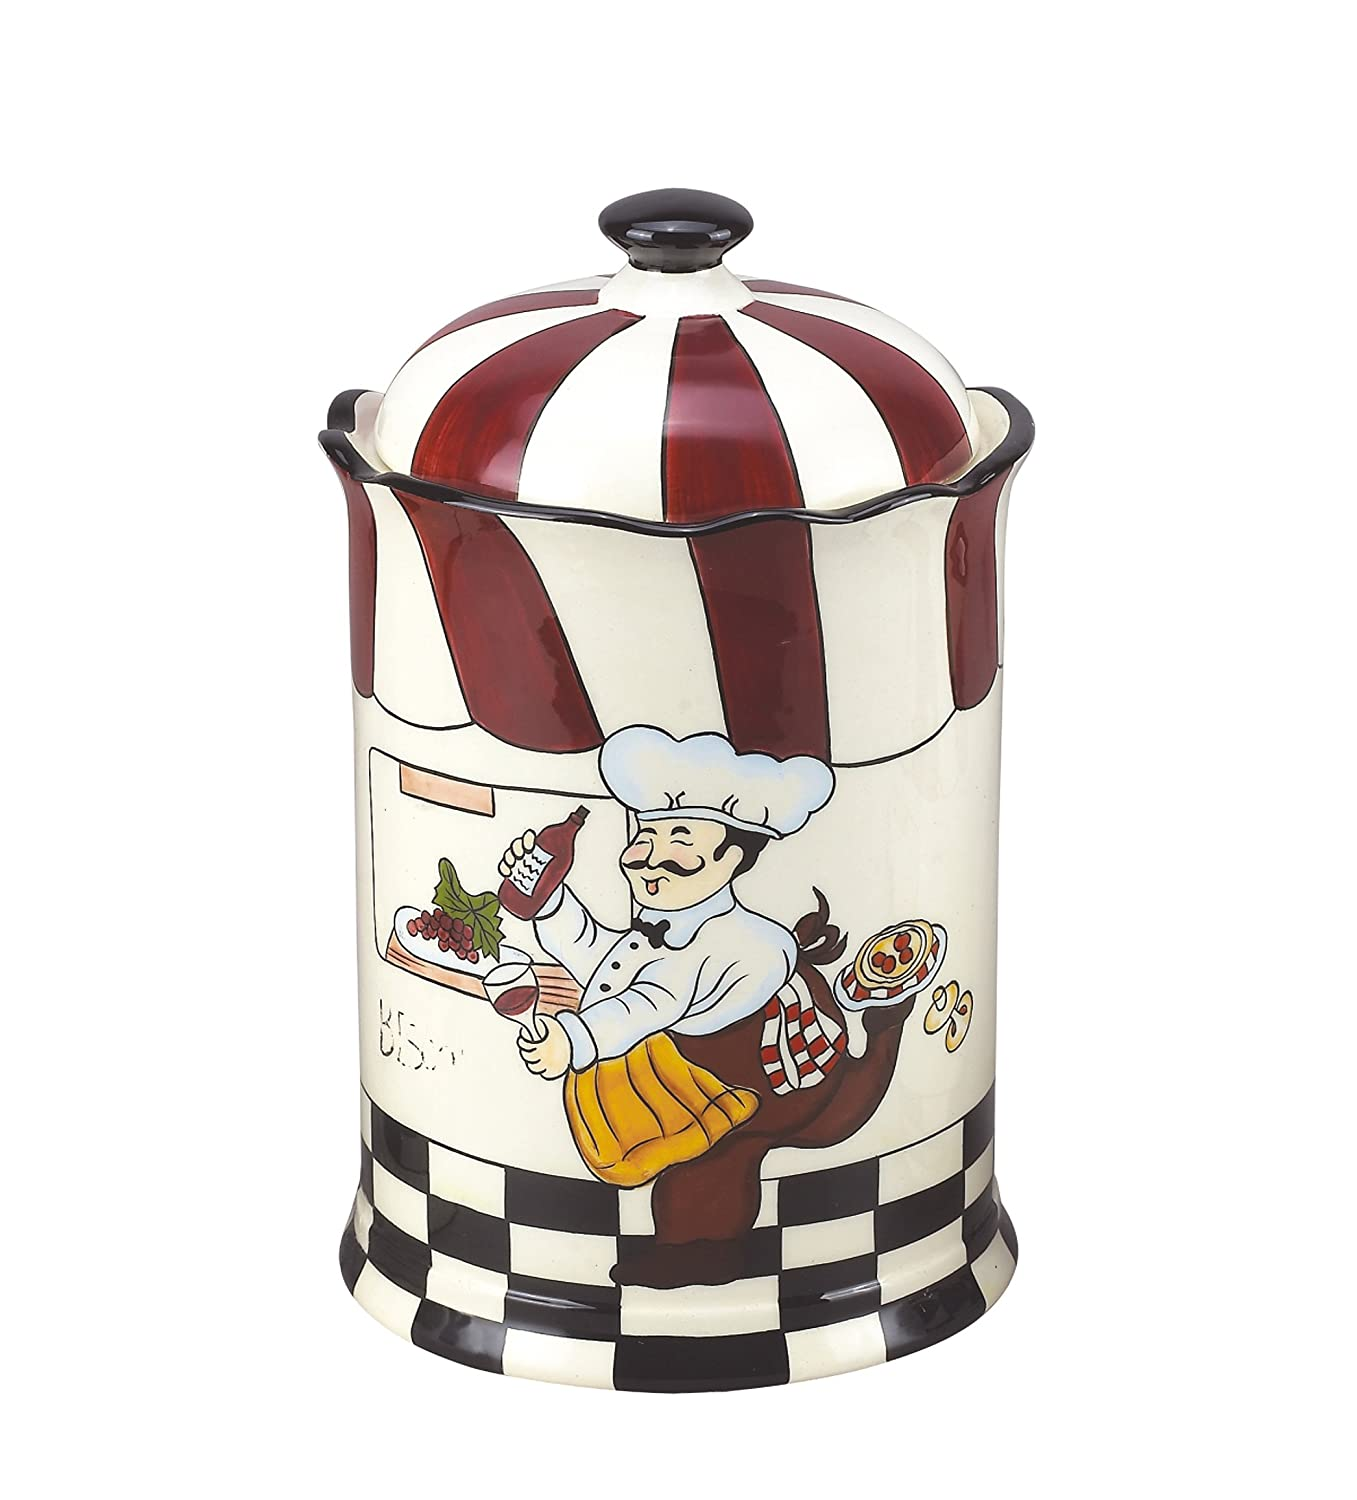 Ceramic Cookie Jar Sets Fat Chef Ceramic Cake Ideas And Designs